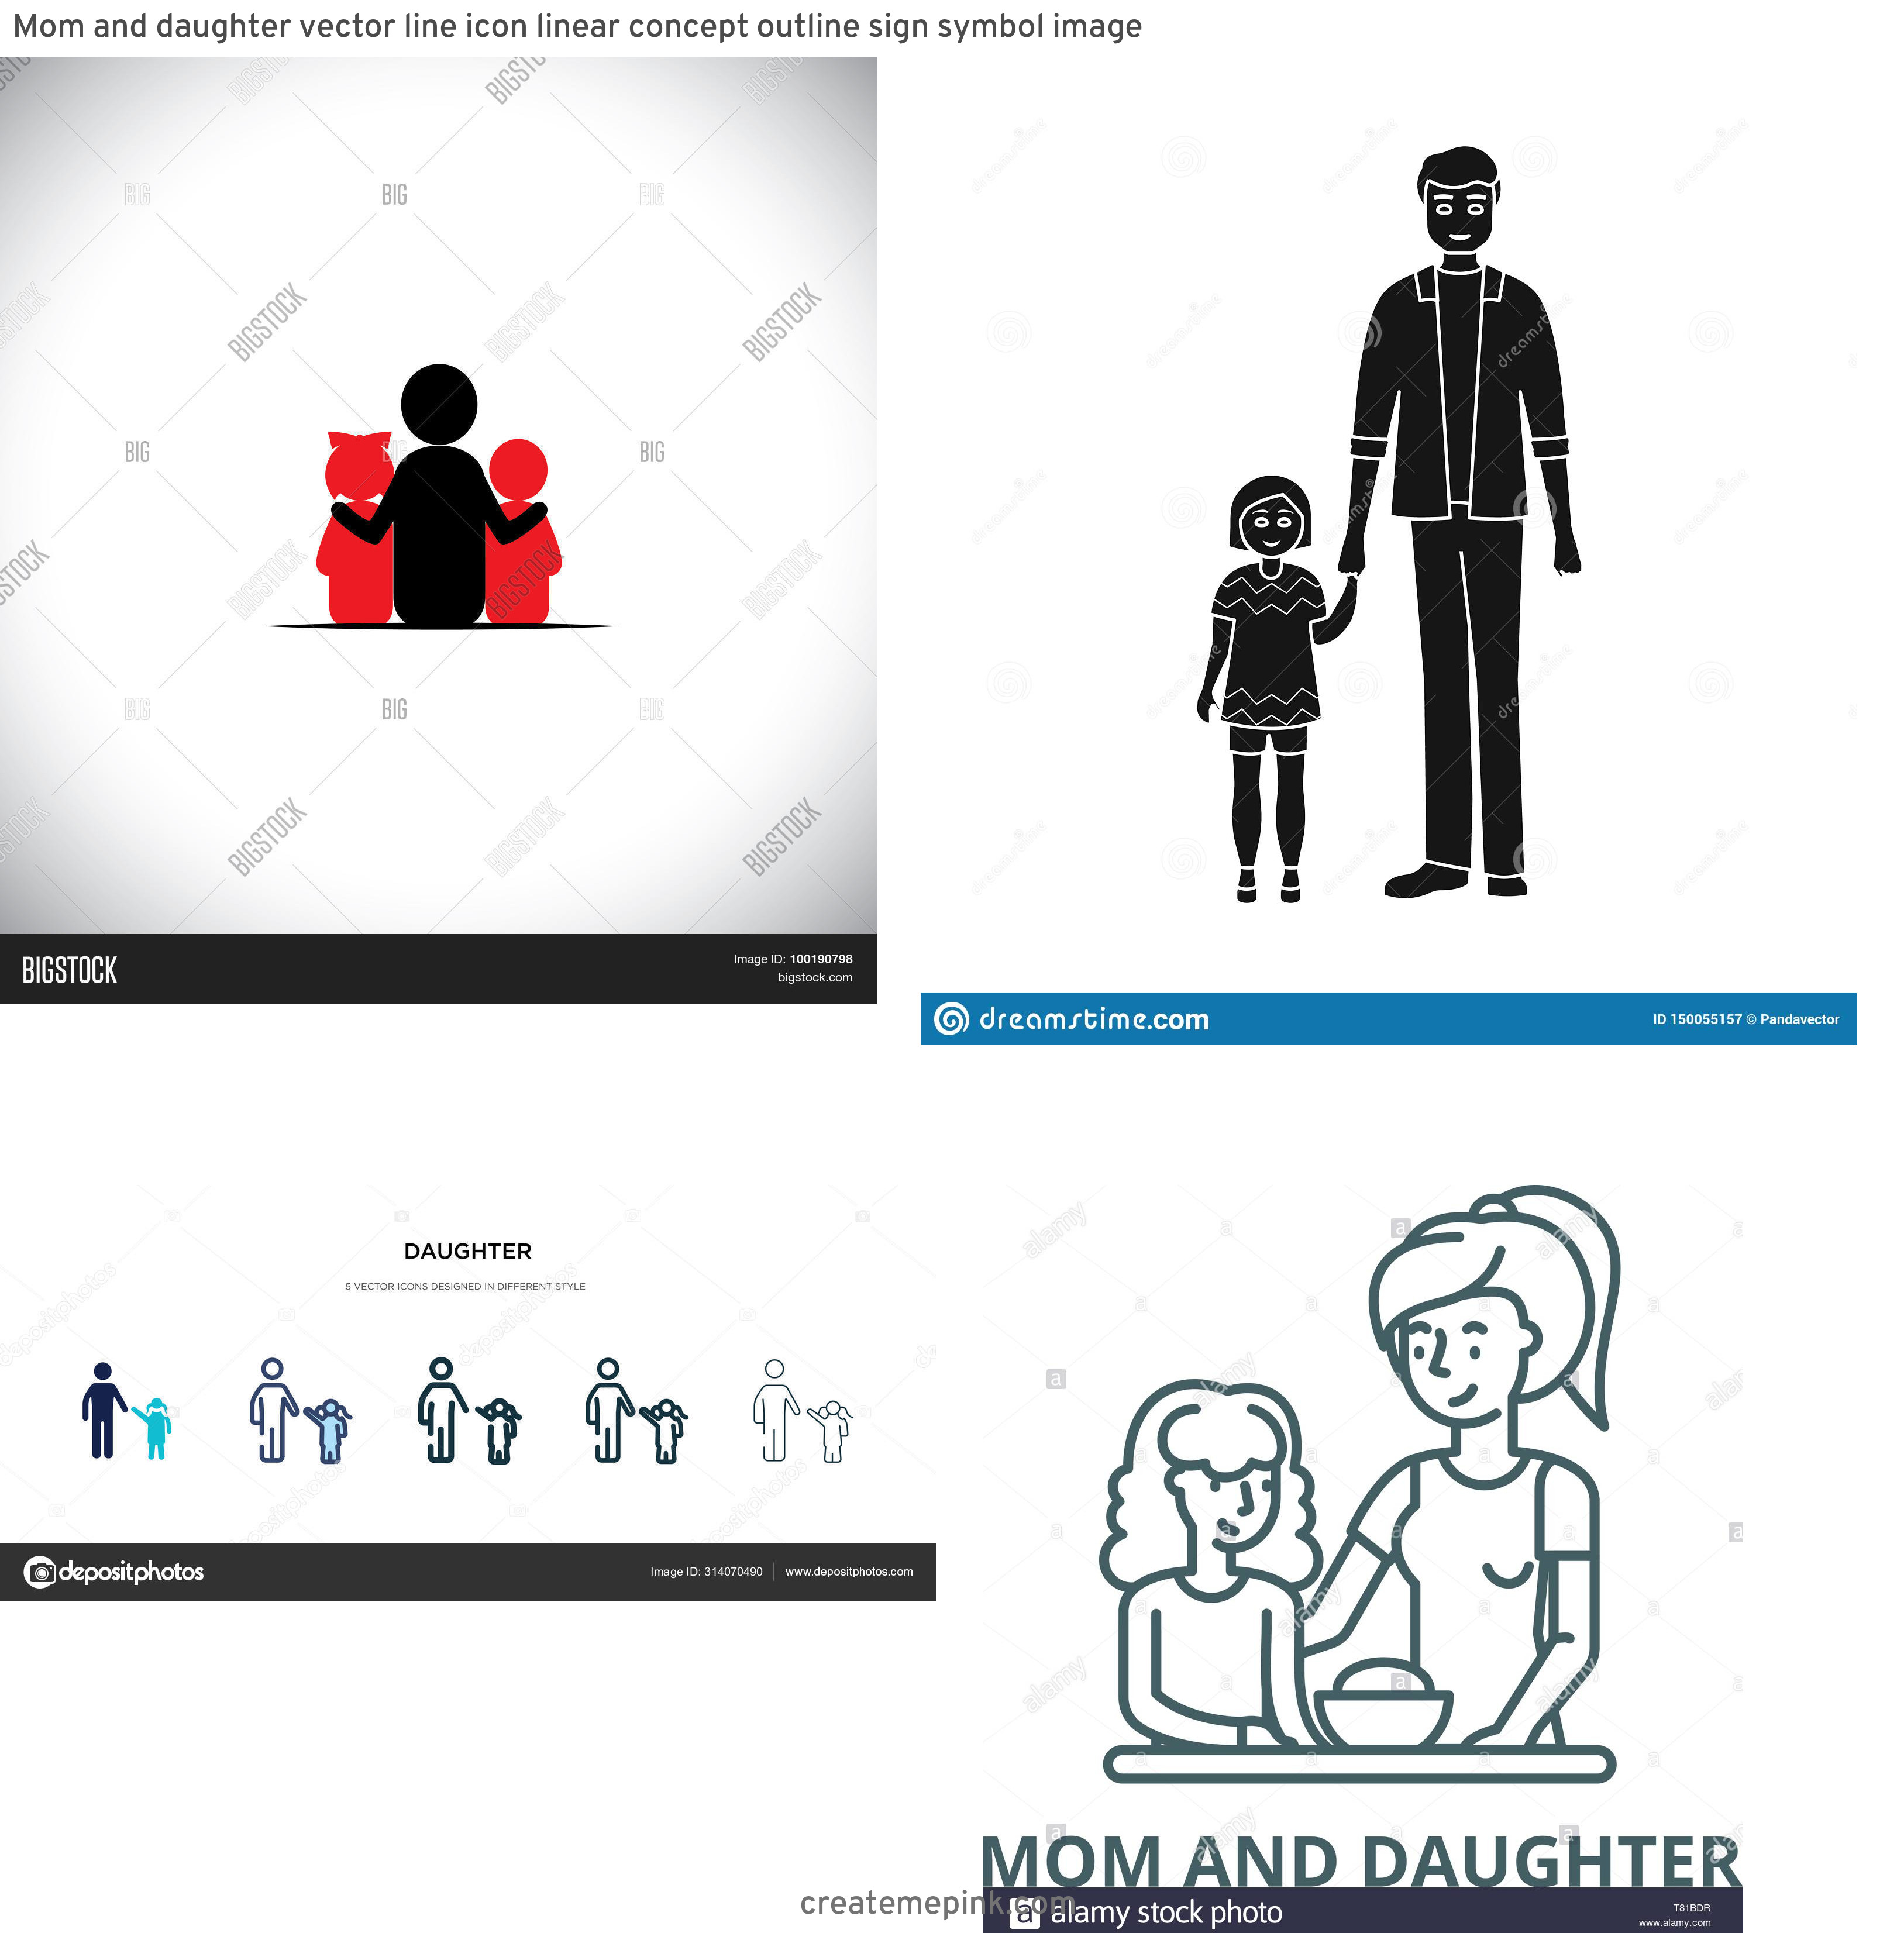 Daughter Vector Icons: Mom And Daughter Vector Line Icon Linear Concept Outline Sign Symbol Image